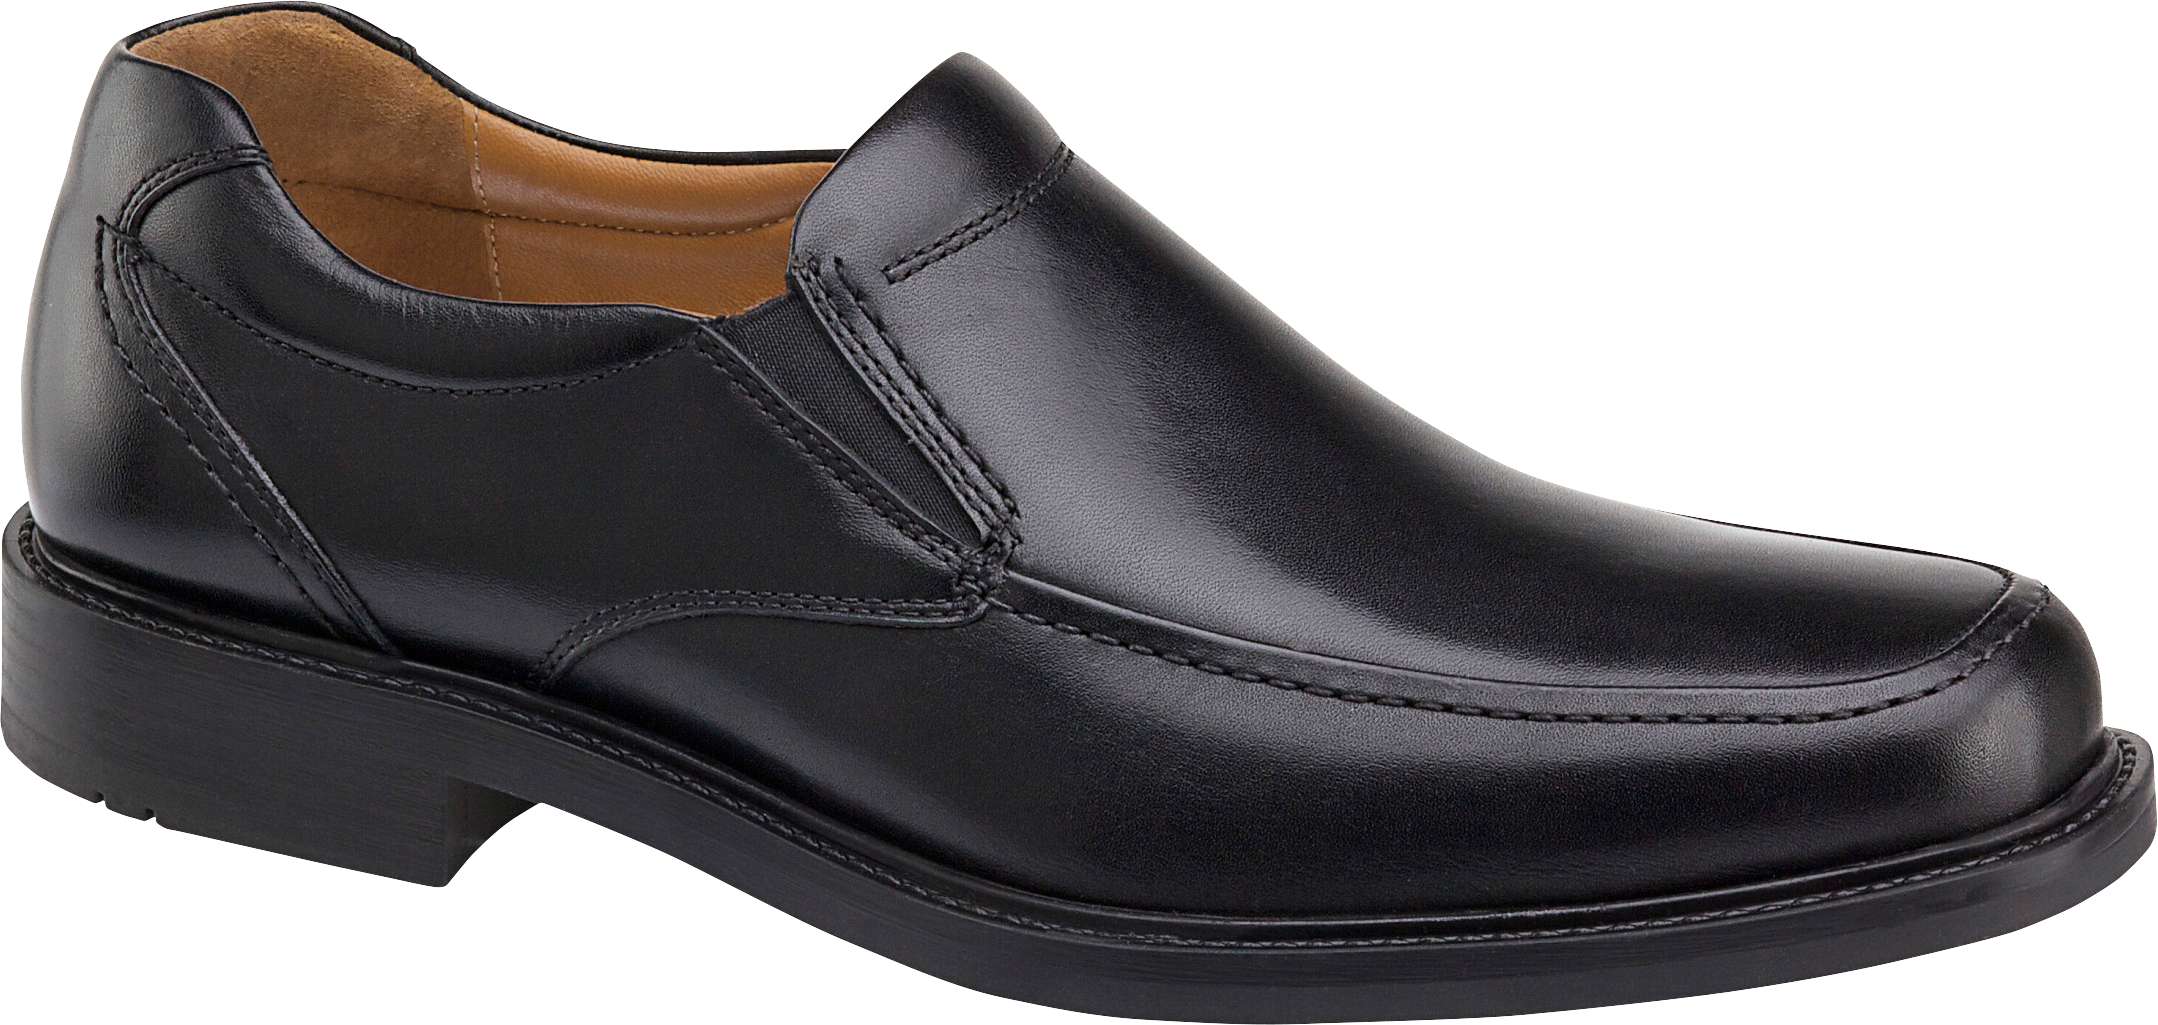 6fc29f1a772 Johnston   Murphy Tabor Loafers - Johnston   Murphy